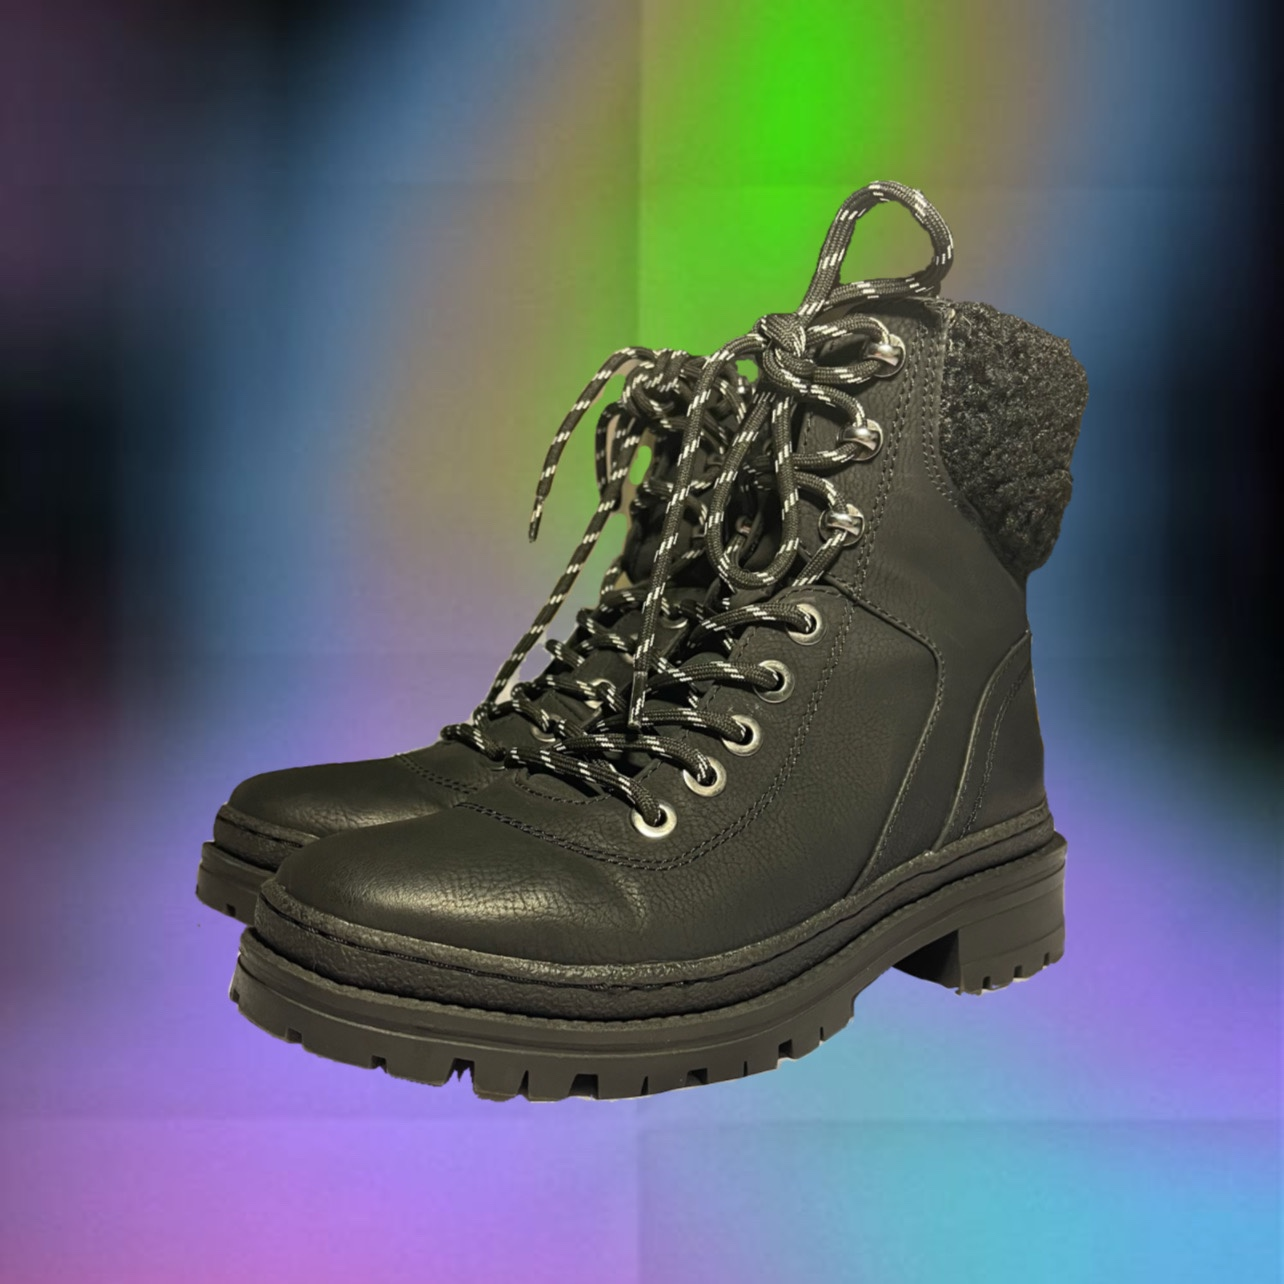 Product Image 1 - STEVE MADDEN BOOTS. in great